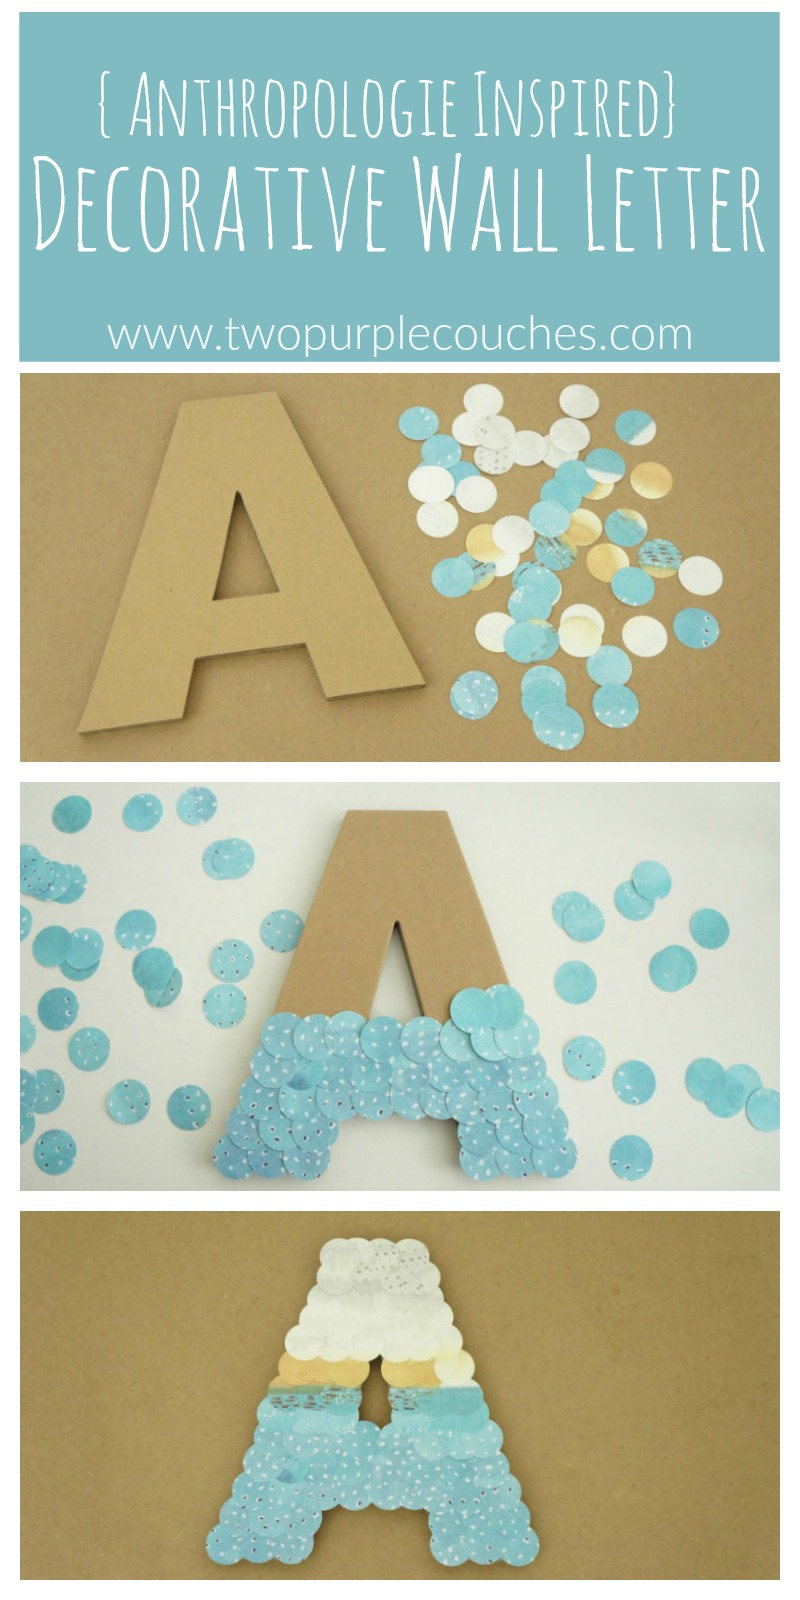 Unique and creative Anthropologie Inspired Wall Letter craft is perfect for home decor or monogram art or decor in a craft room or kid's bedroom.